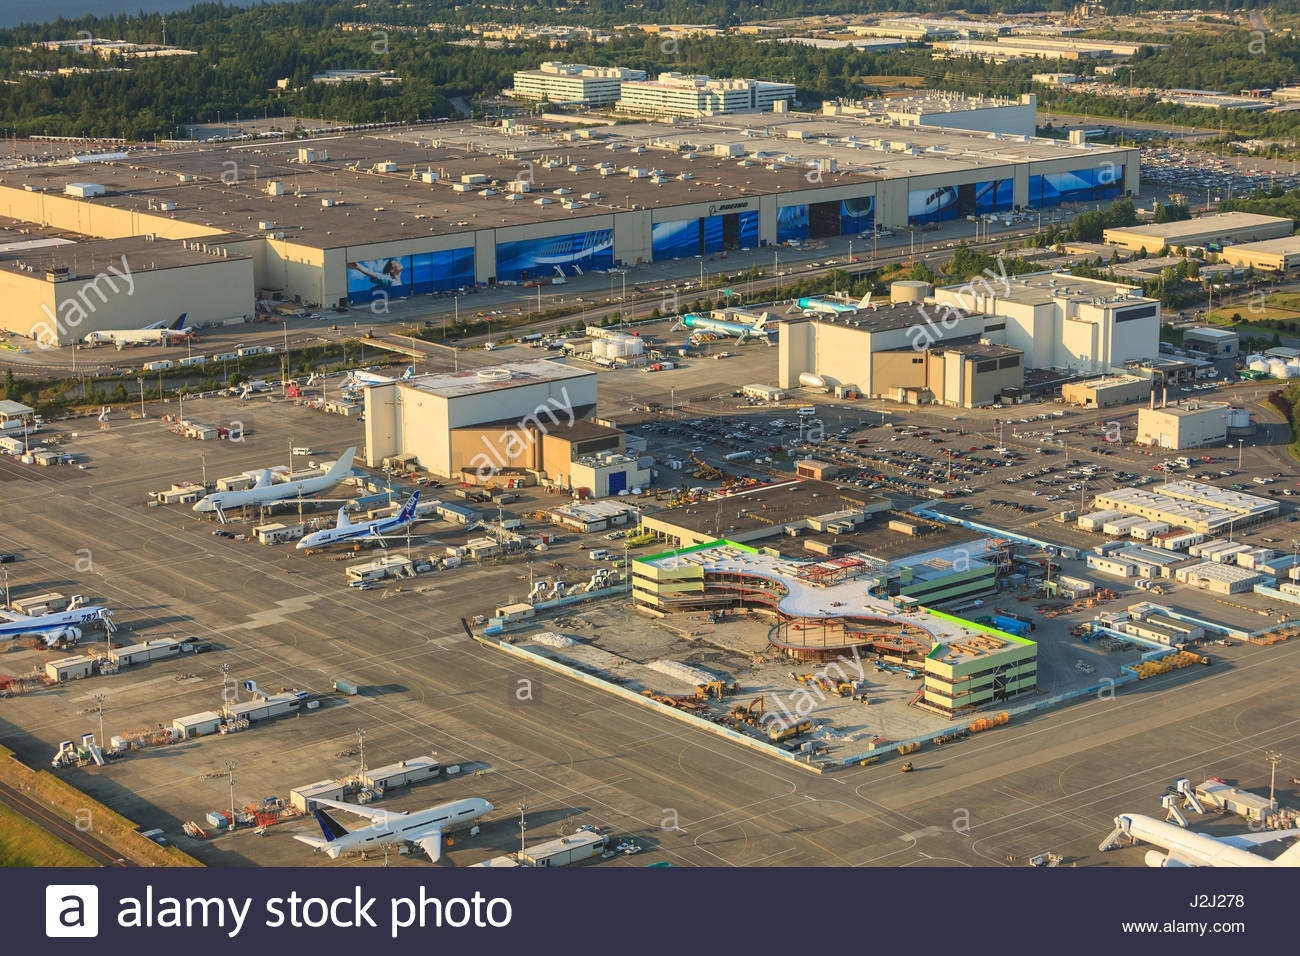 Aerial View Of Paine Field And Boeing Everett Plant, Largest inside Boeing Everett Factory Map